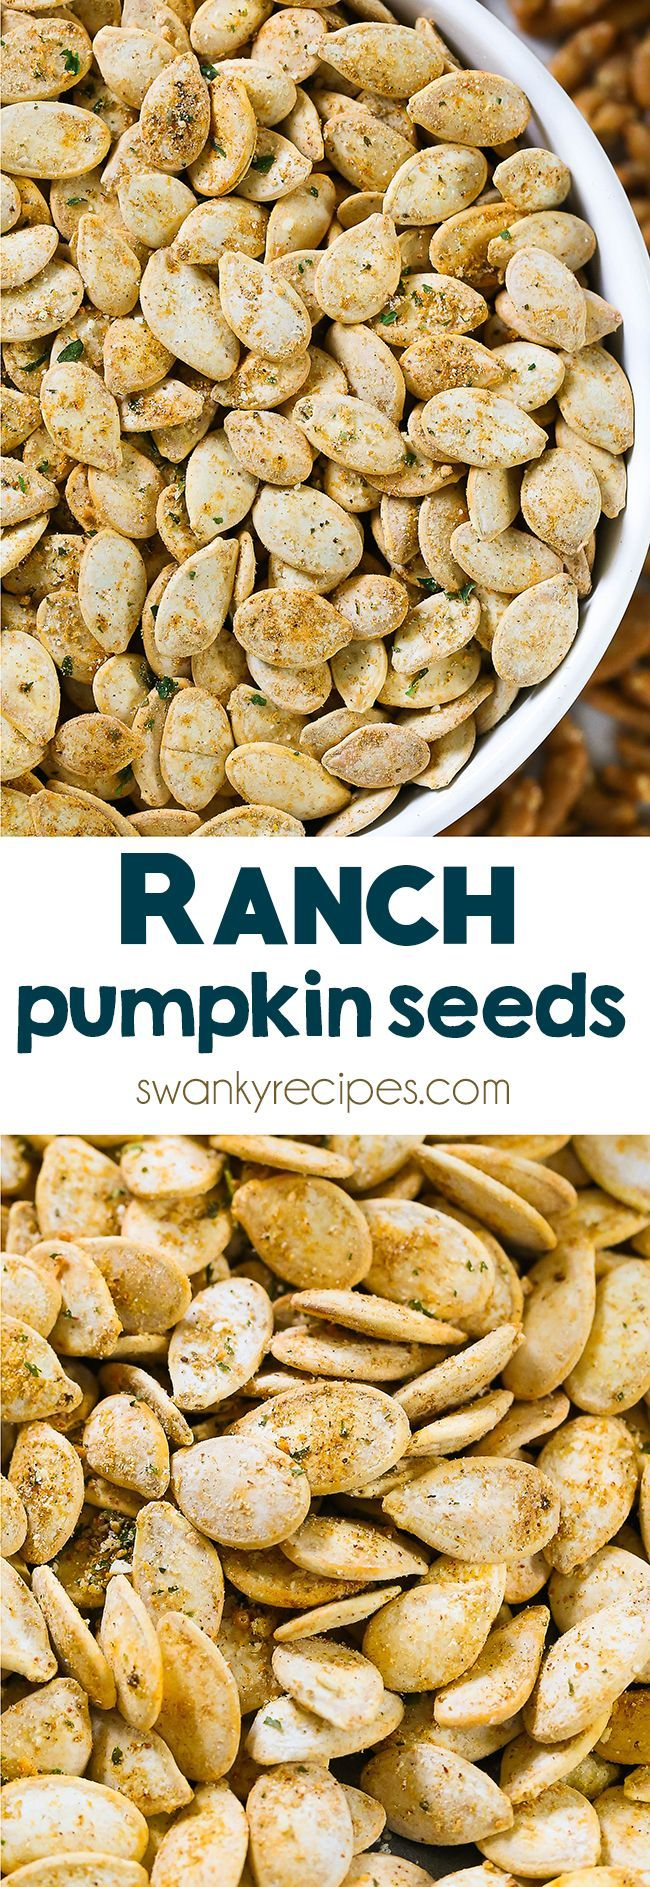 Ranch Pumpkin Seeds - Quick and easy roasted pumpkin seeds with a zesty ranch blend. You'll fall in love with this healthy Ranch Pumpkin Seed recipe. Perfect pumpkin seed snack this autumn. #pumpkinseedsrecipe